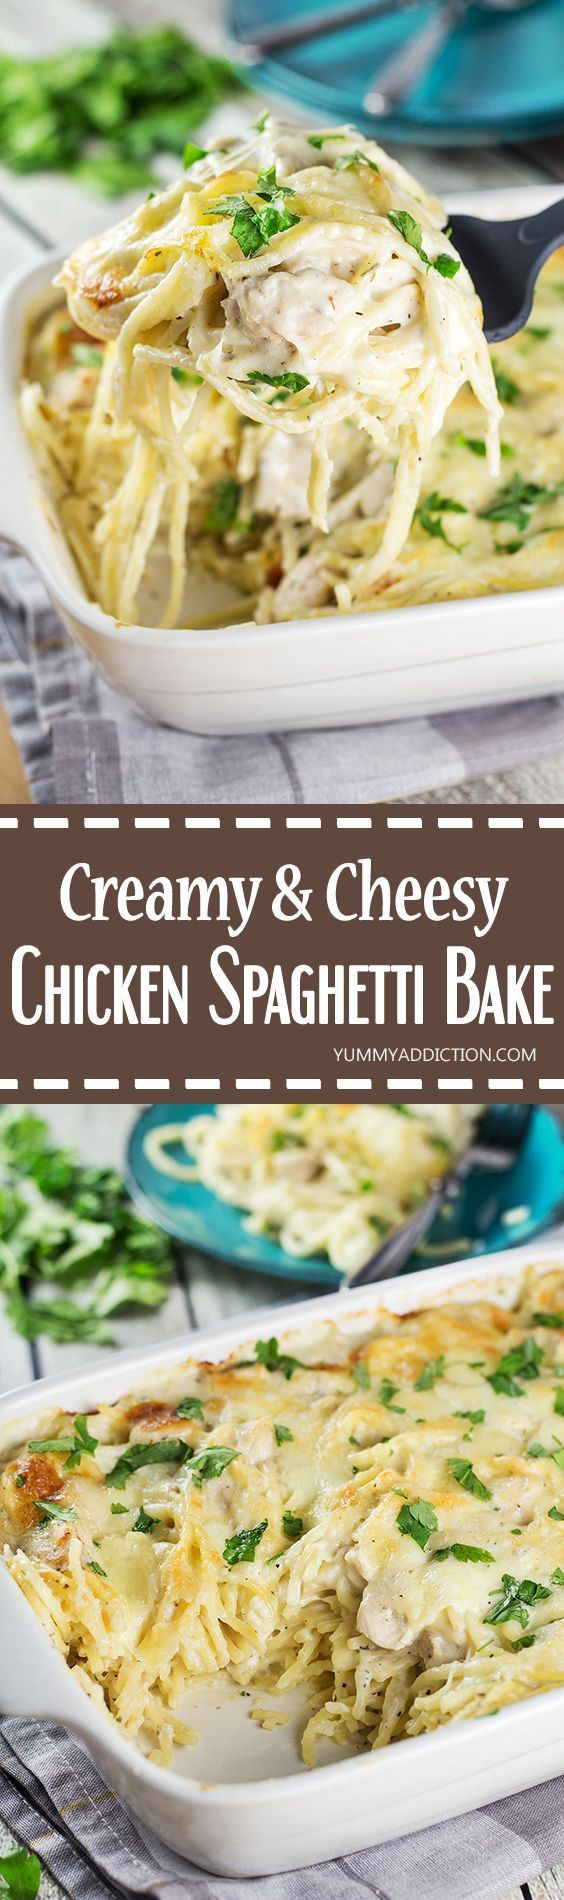 Cheesy Chicken Spaghetti Bake for dinner? Your family will thank you! Comforting, filling, and super easy & quick to make. What else do you need?